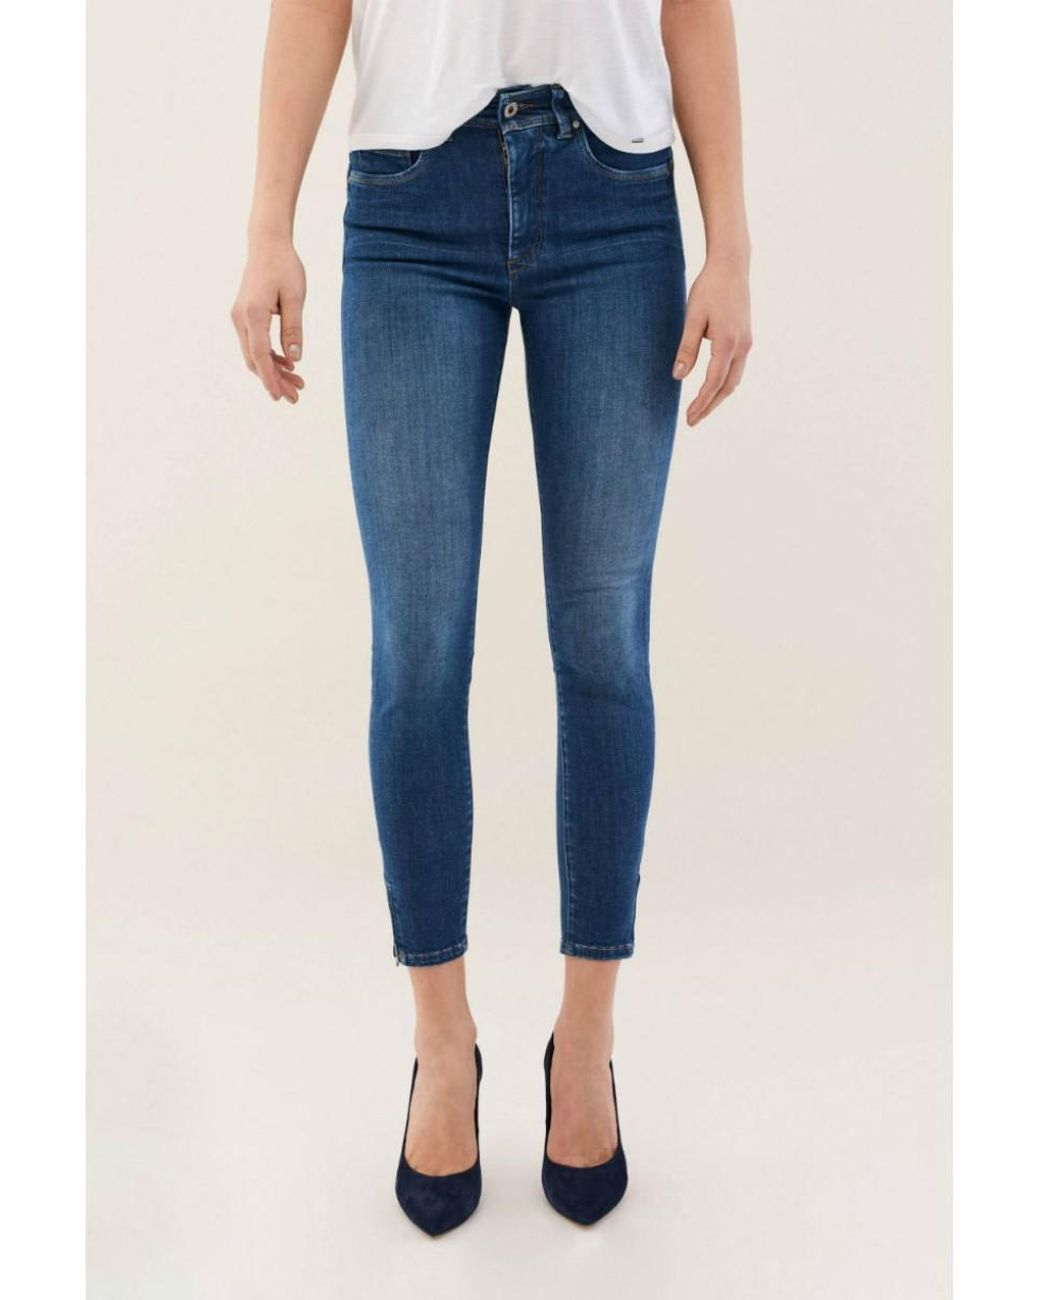 coupon codes stable quality fashion style Secret Glamour Skinny Jeans With Zip